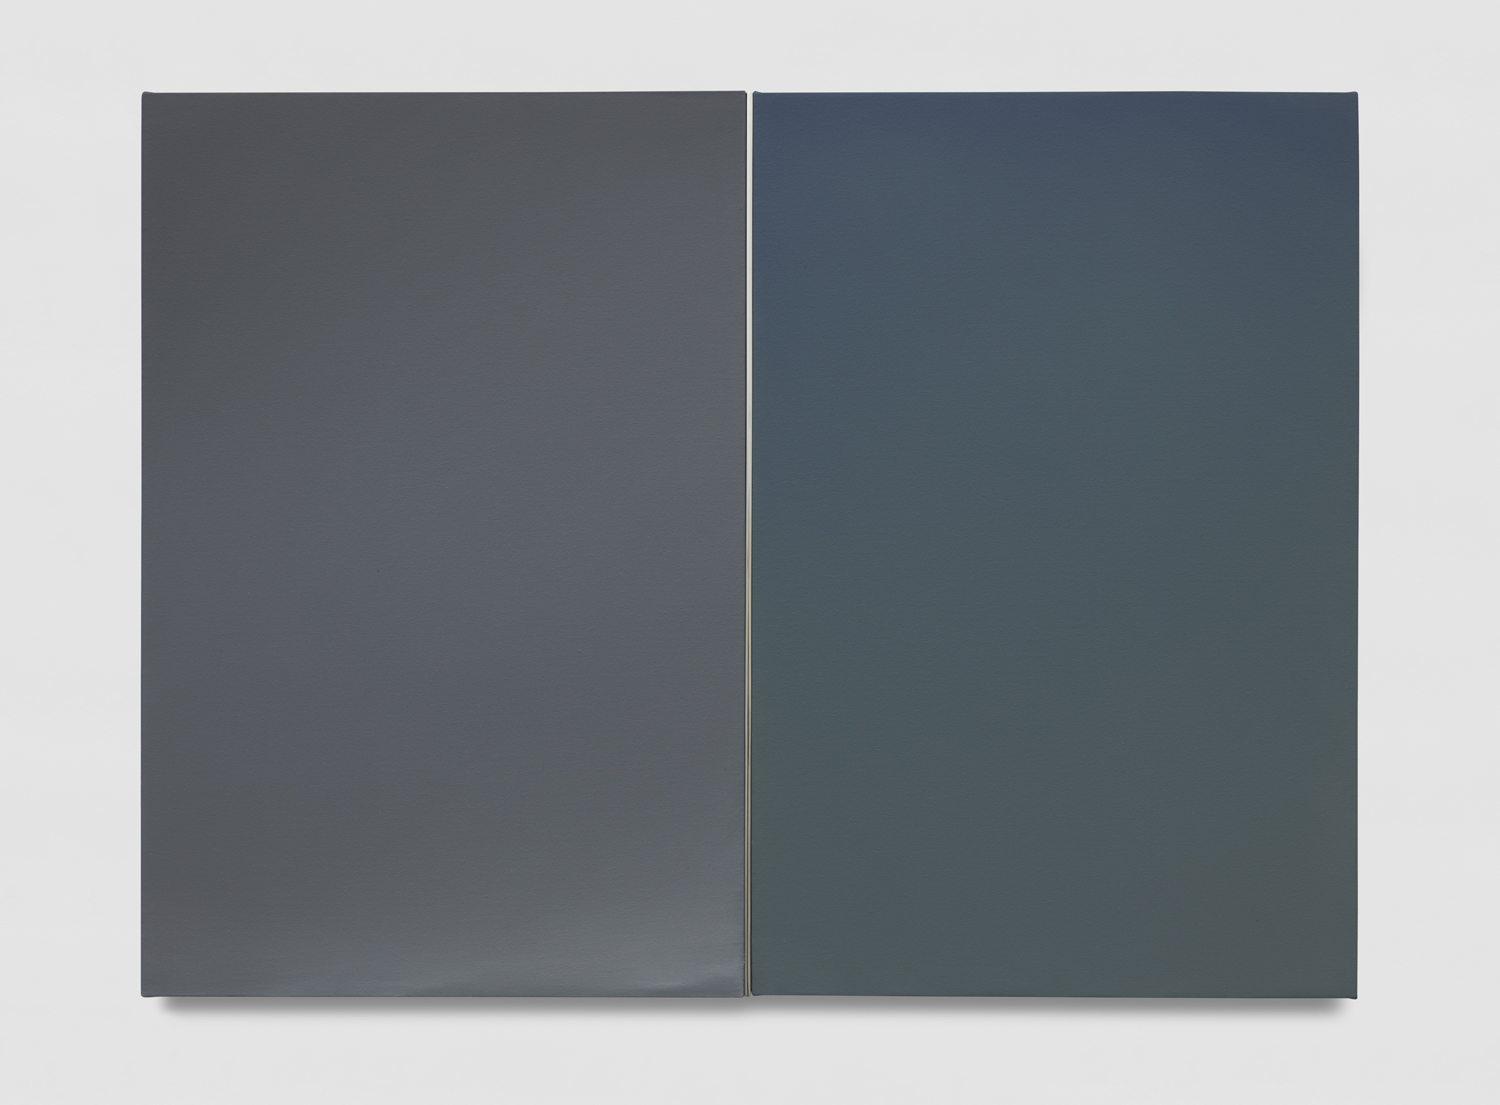 Mara De Luca   LIGHTBRIDGE: Dusk Diptych  2019 Acrylic on canvas with polished aluminum element 36 x 48 inches  Photo by Jeff McLane